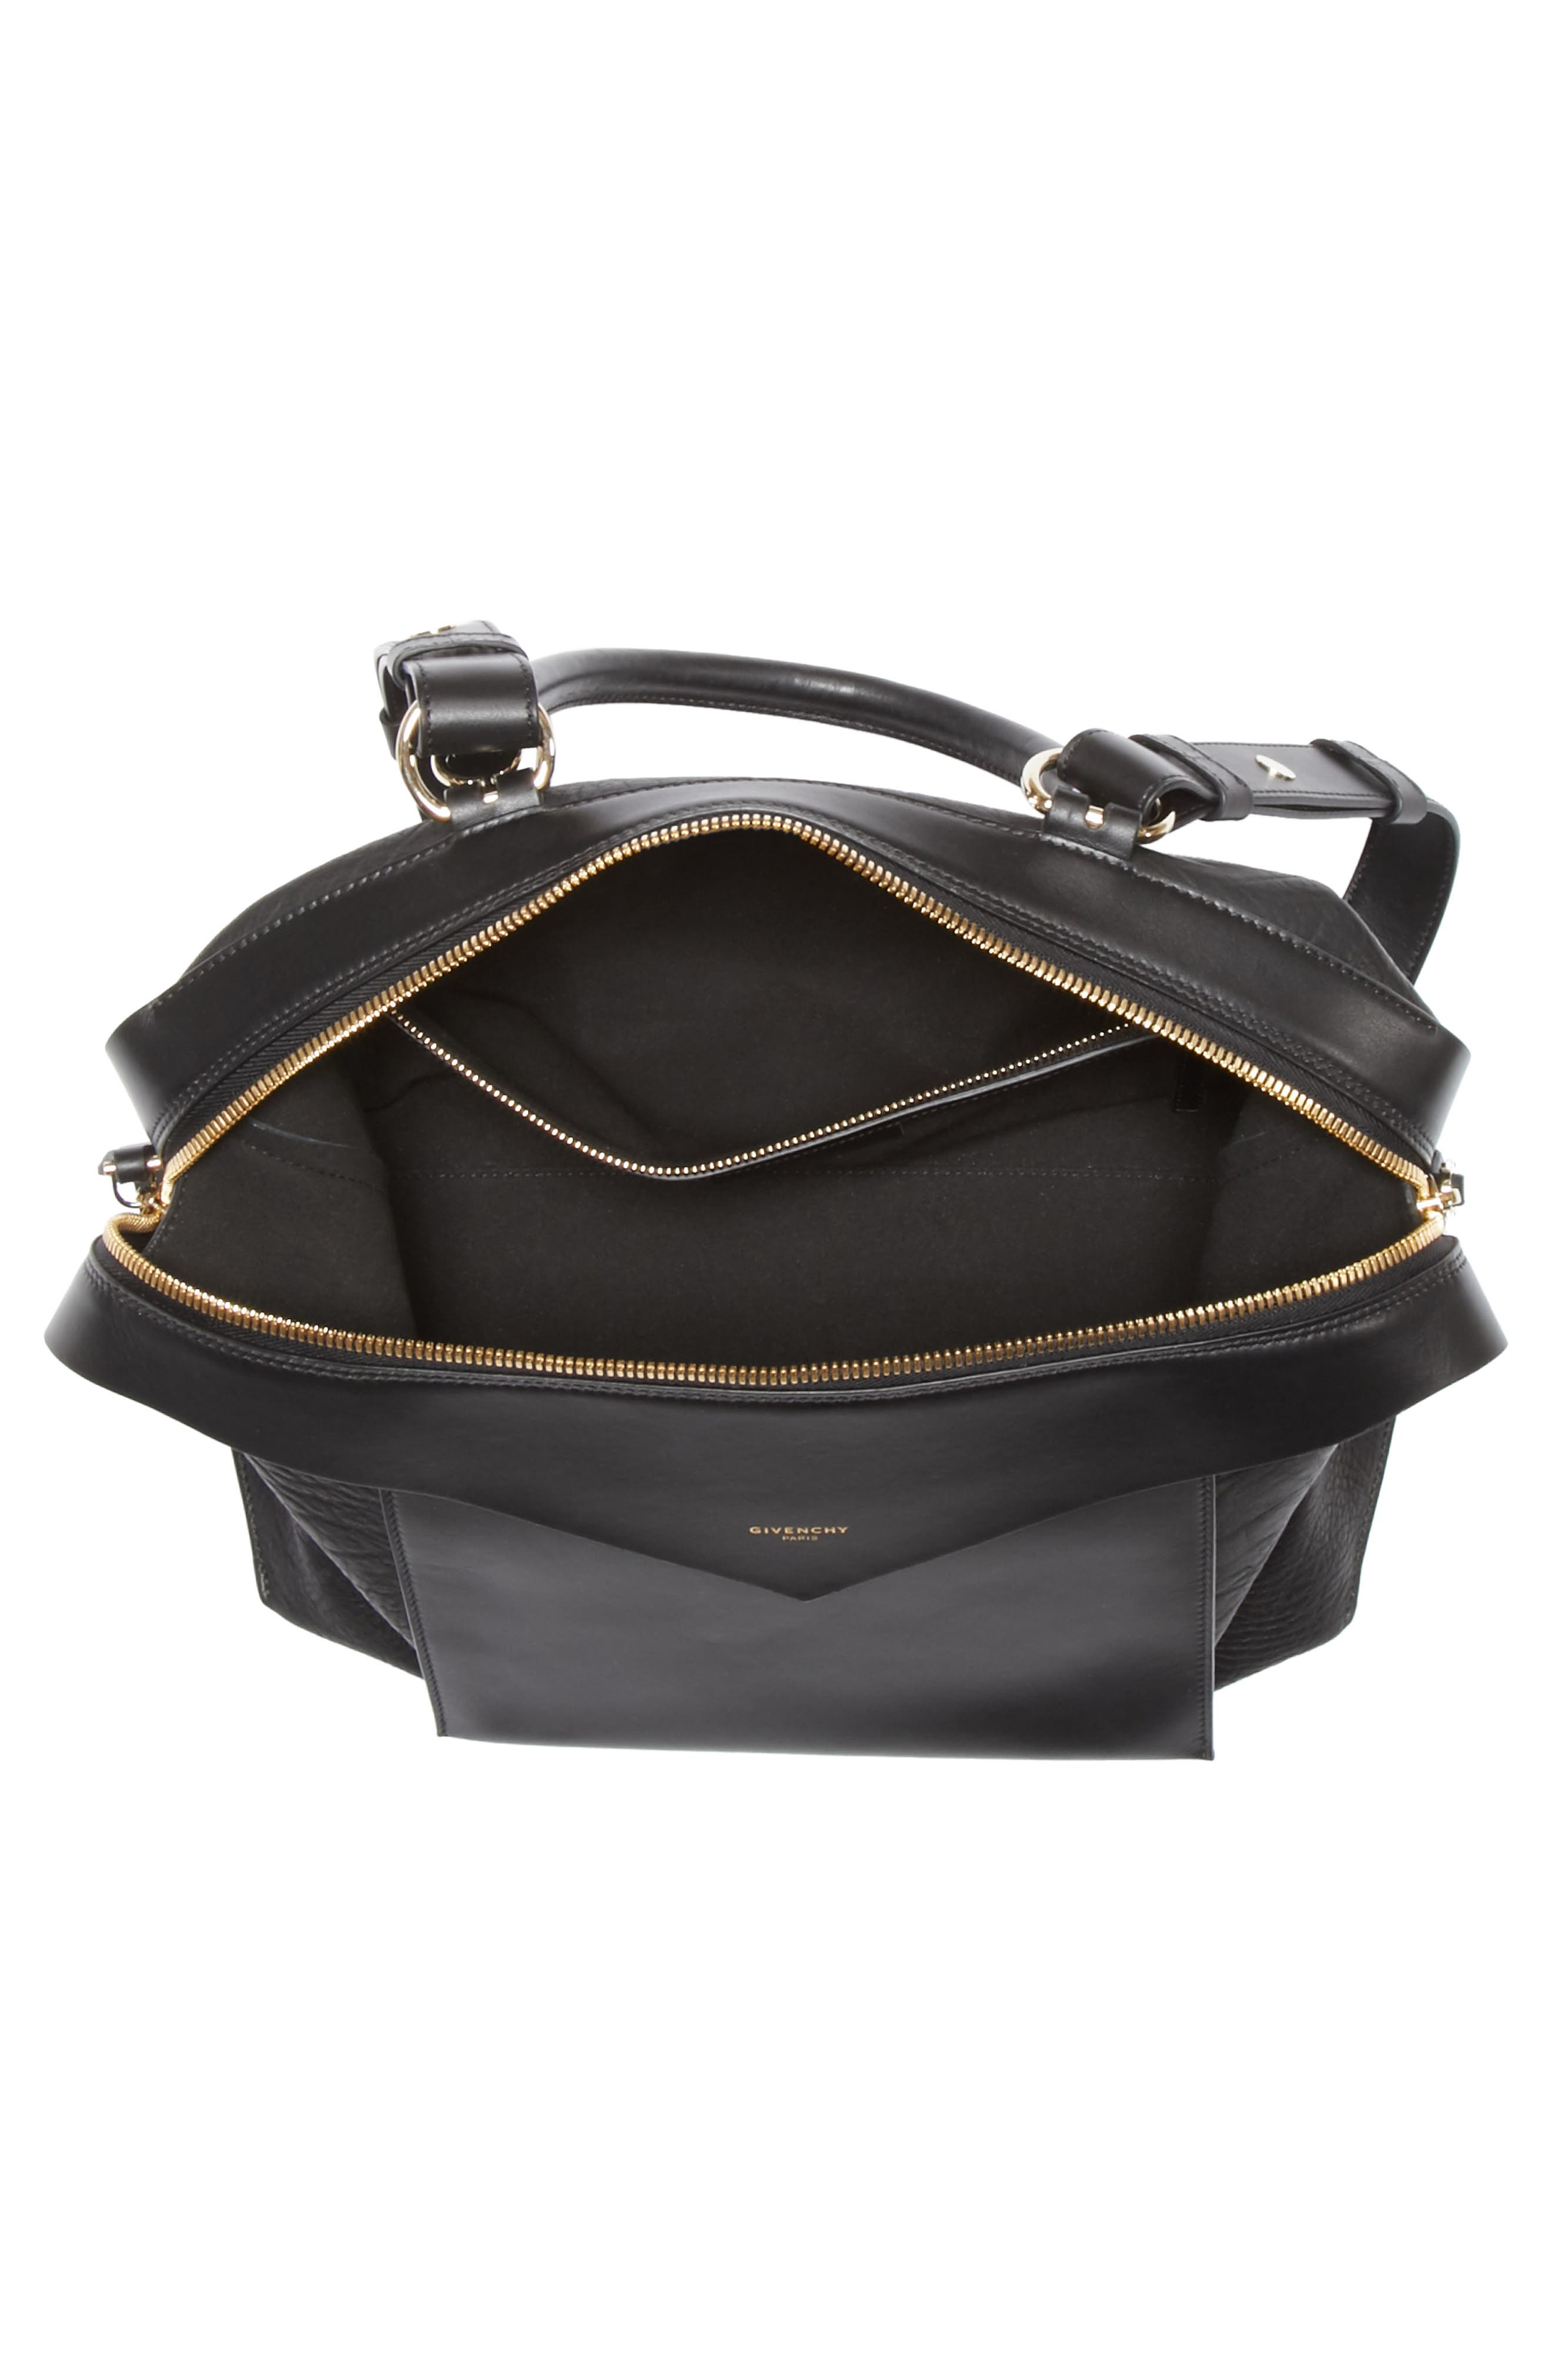 GIVENCHY,                             Medium Sway Leather Satchel,                             Alternate thumbnail 3, color,                             001